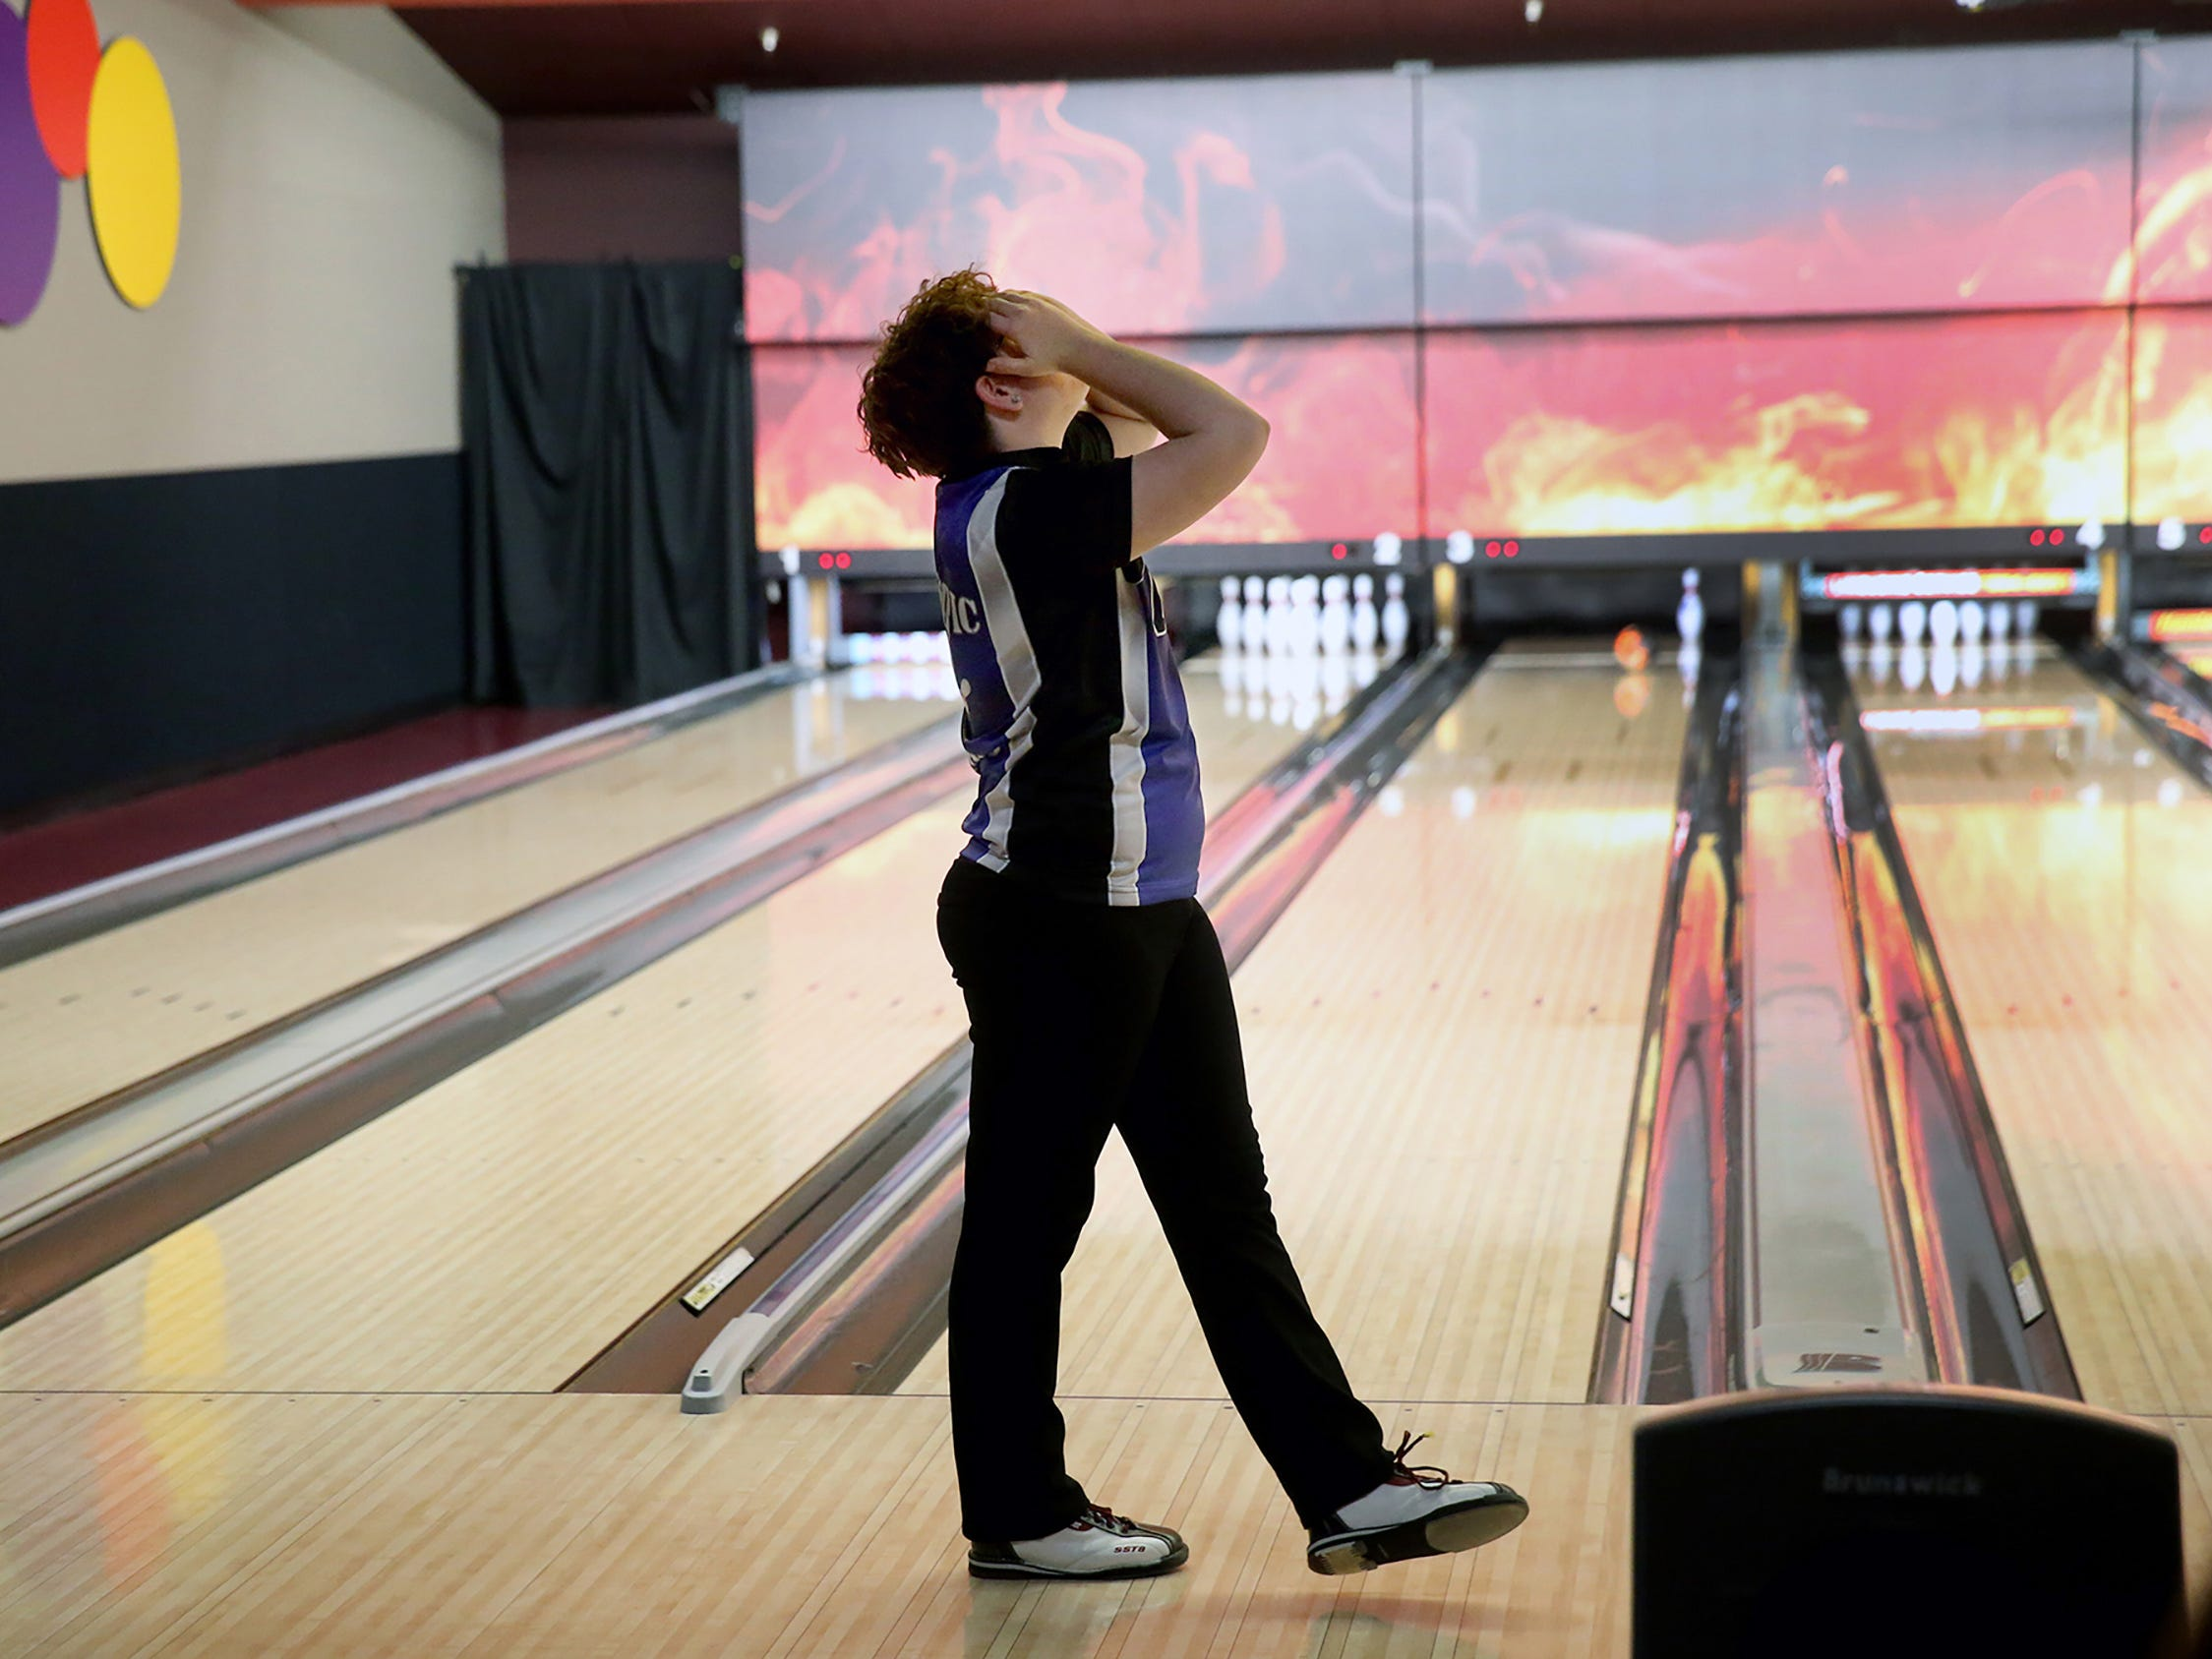 Olympic High School bowler Heather Huskinson reacts to just missing a spare at All-Star Lanes in Silverdale on Thursday, JAN, 11, 2017.